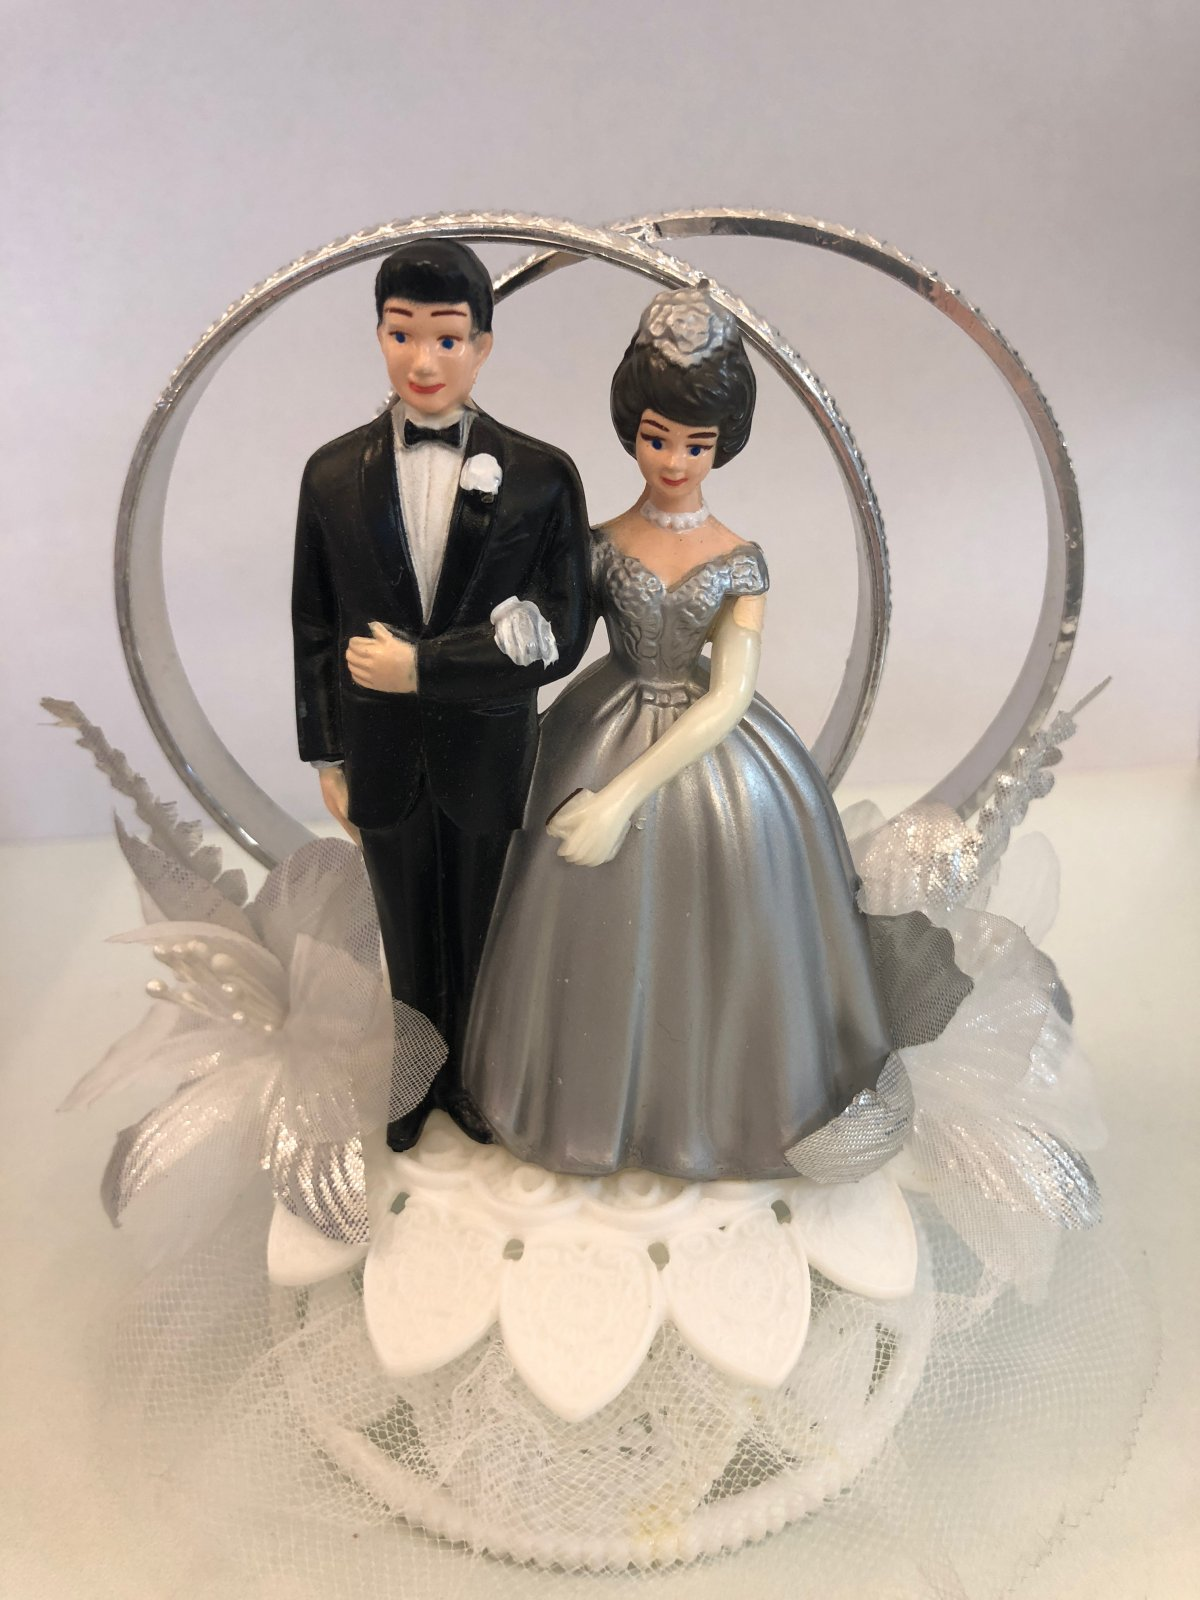 25th Anniversary Couple Cake Topper with Double Rings